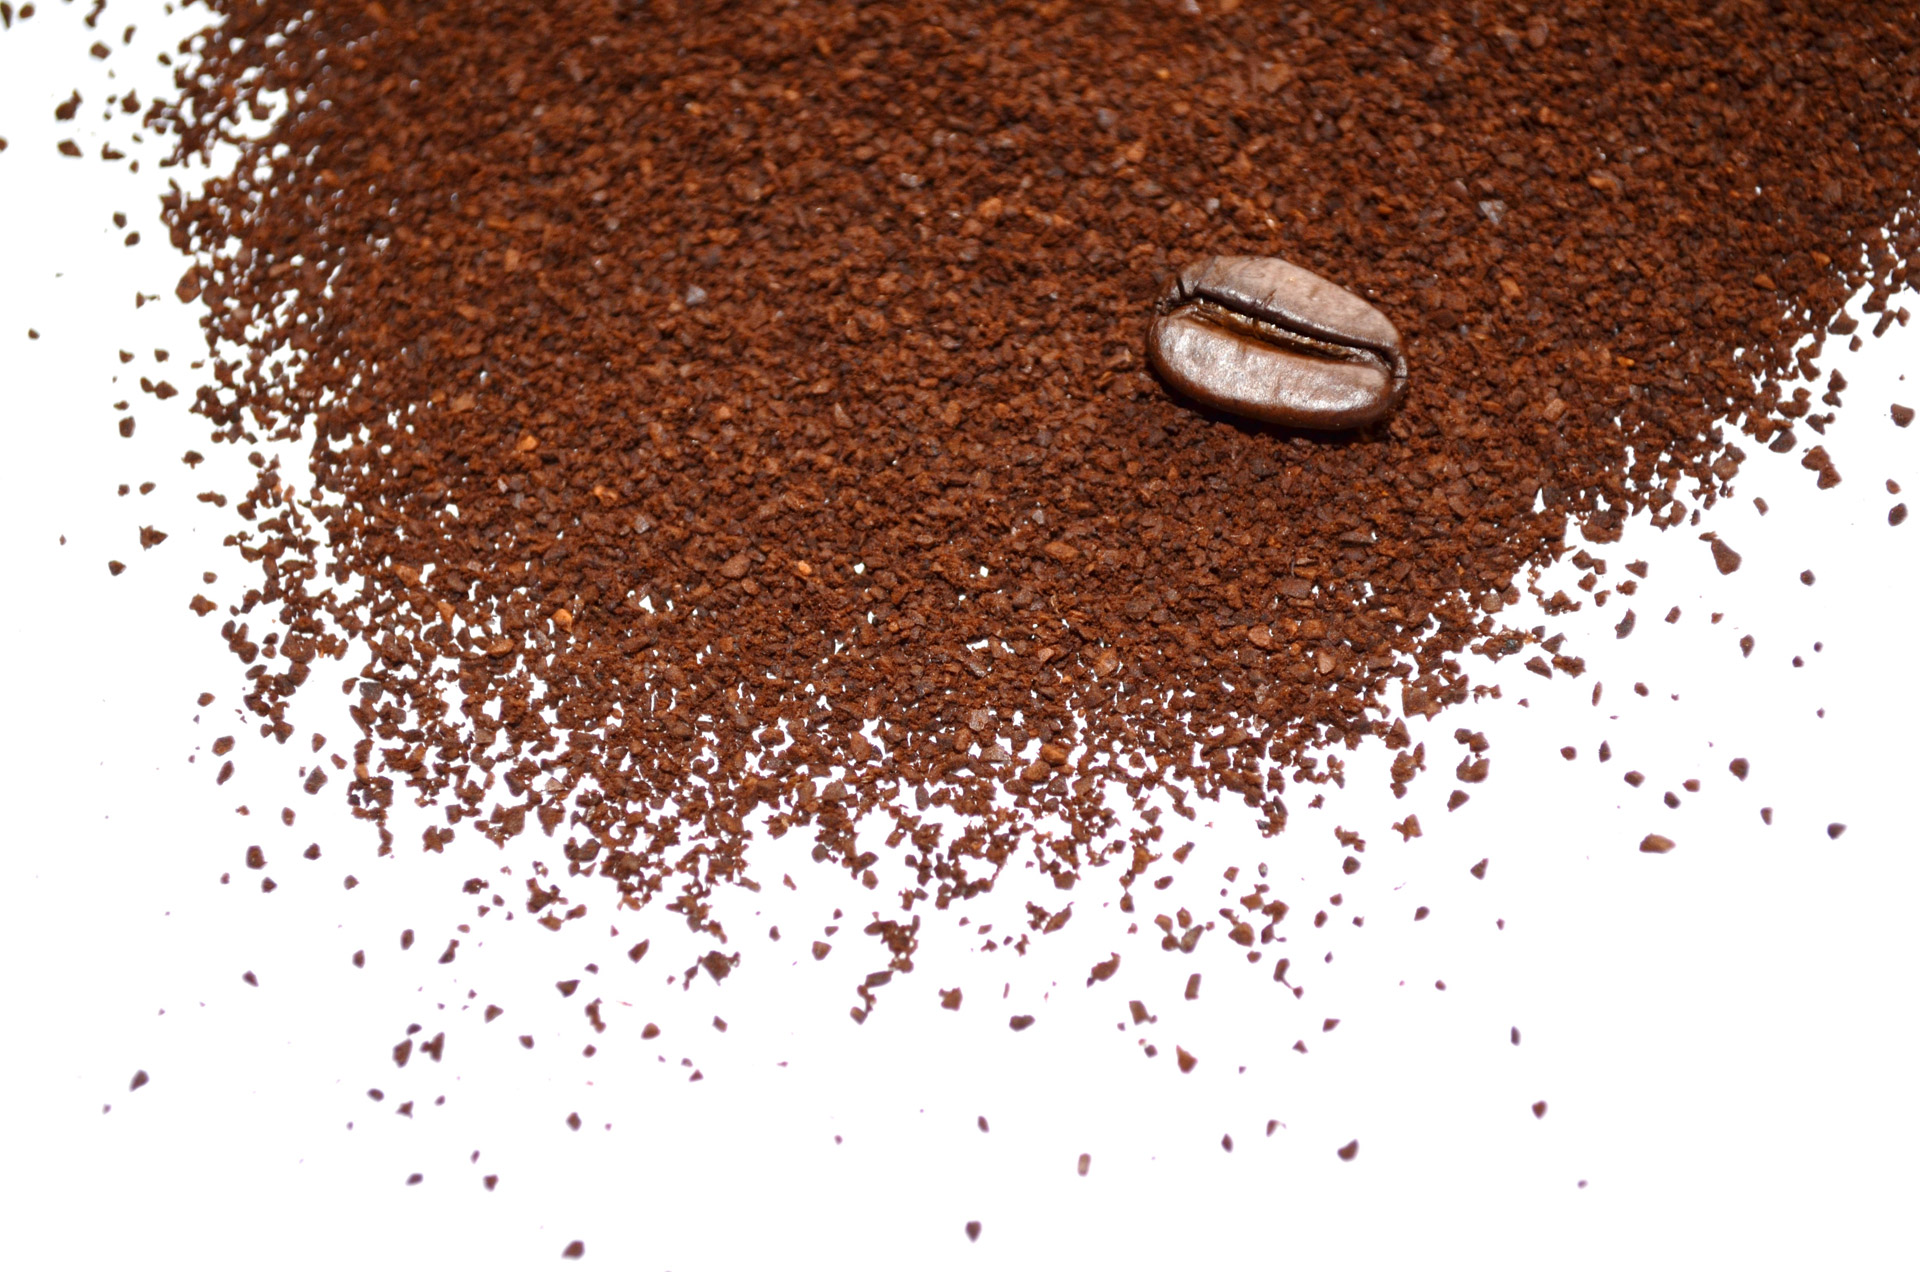 Image: Functional recycling: Spent coffee grounds can make soil more fertile